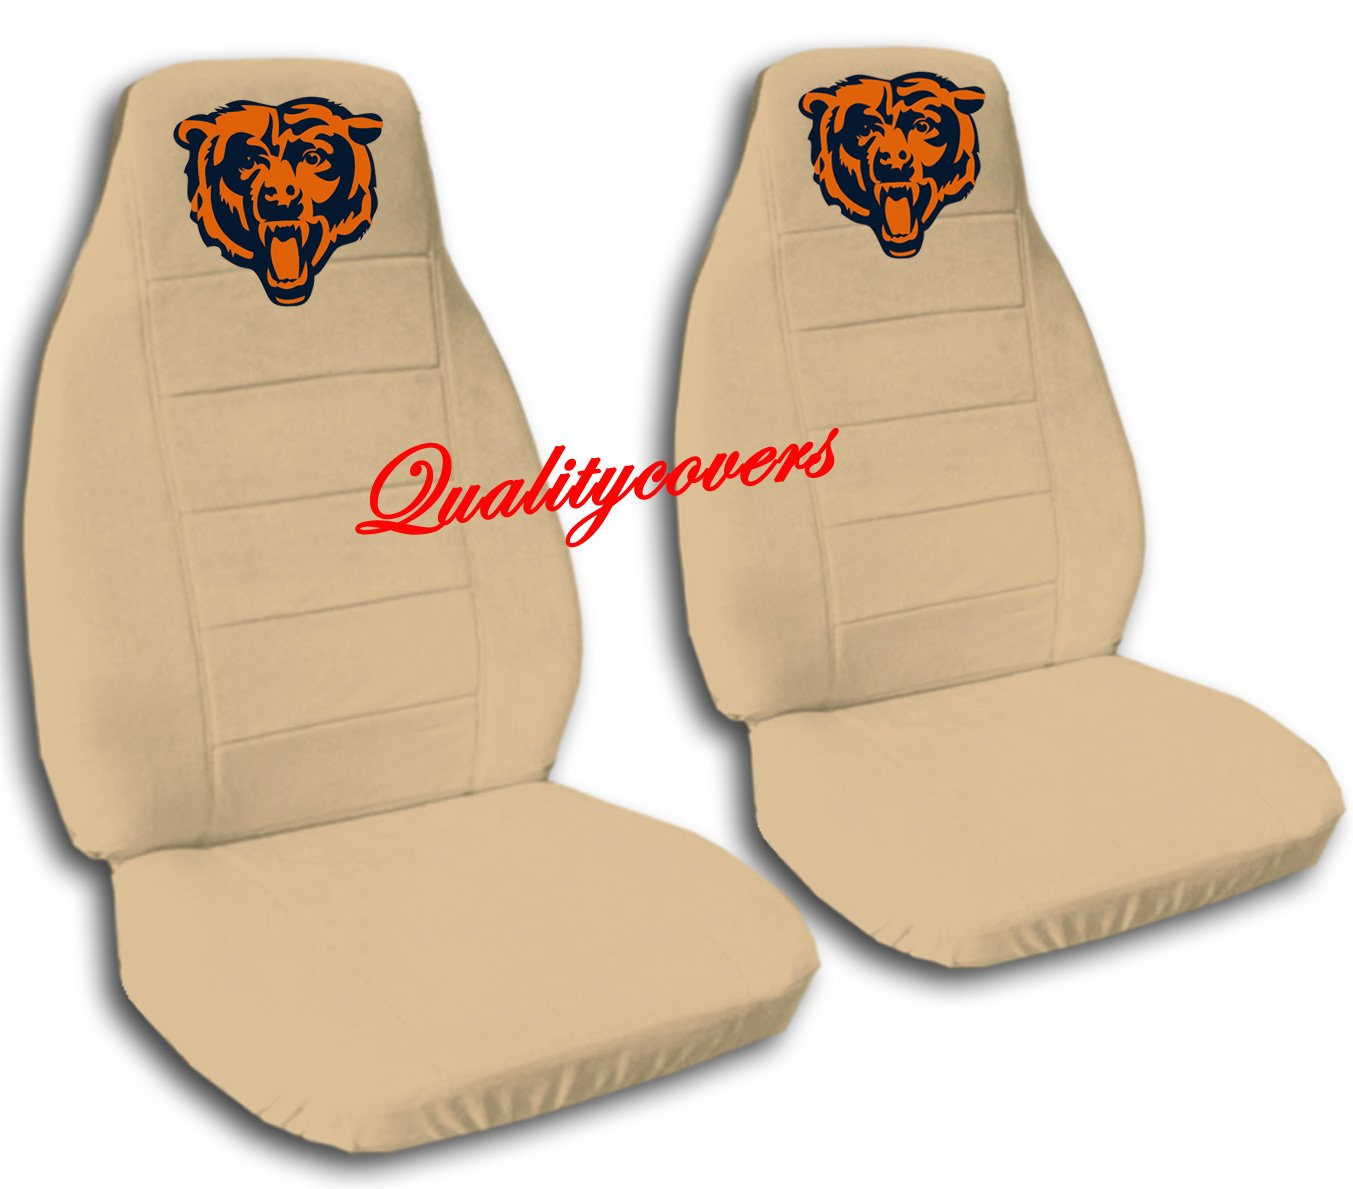 2 Tan Chicago seat covers for a 2007 to 2012 Ford Fusion. Side airbag friendly.